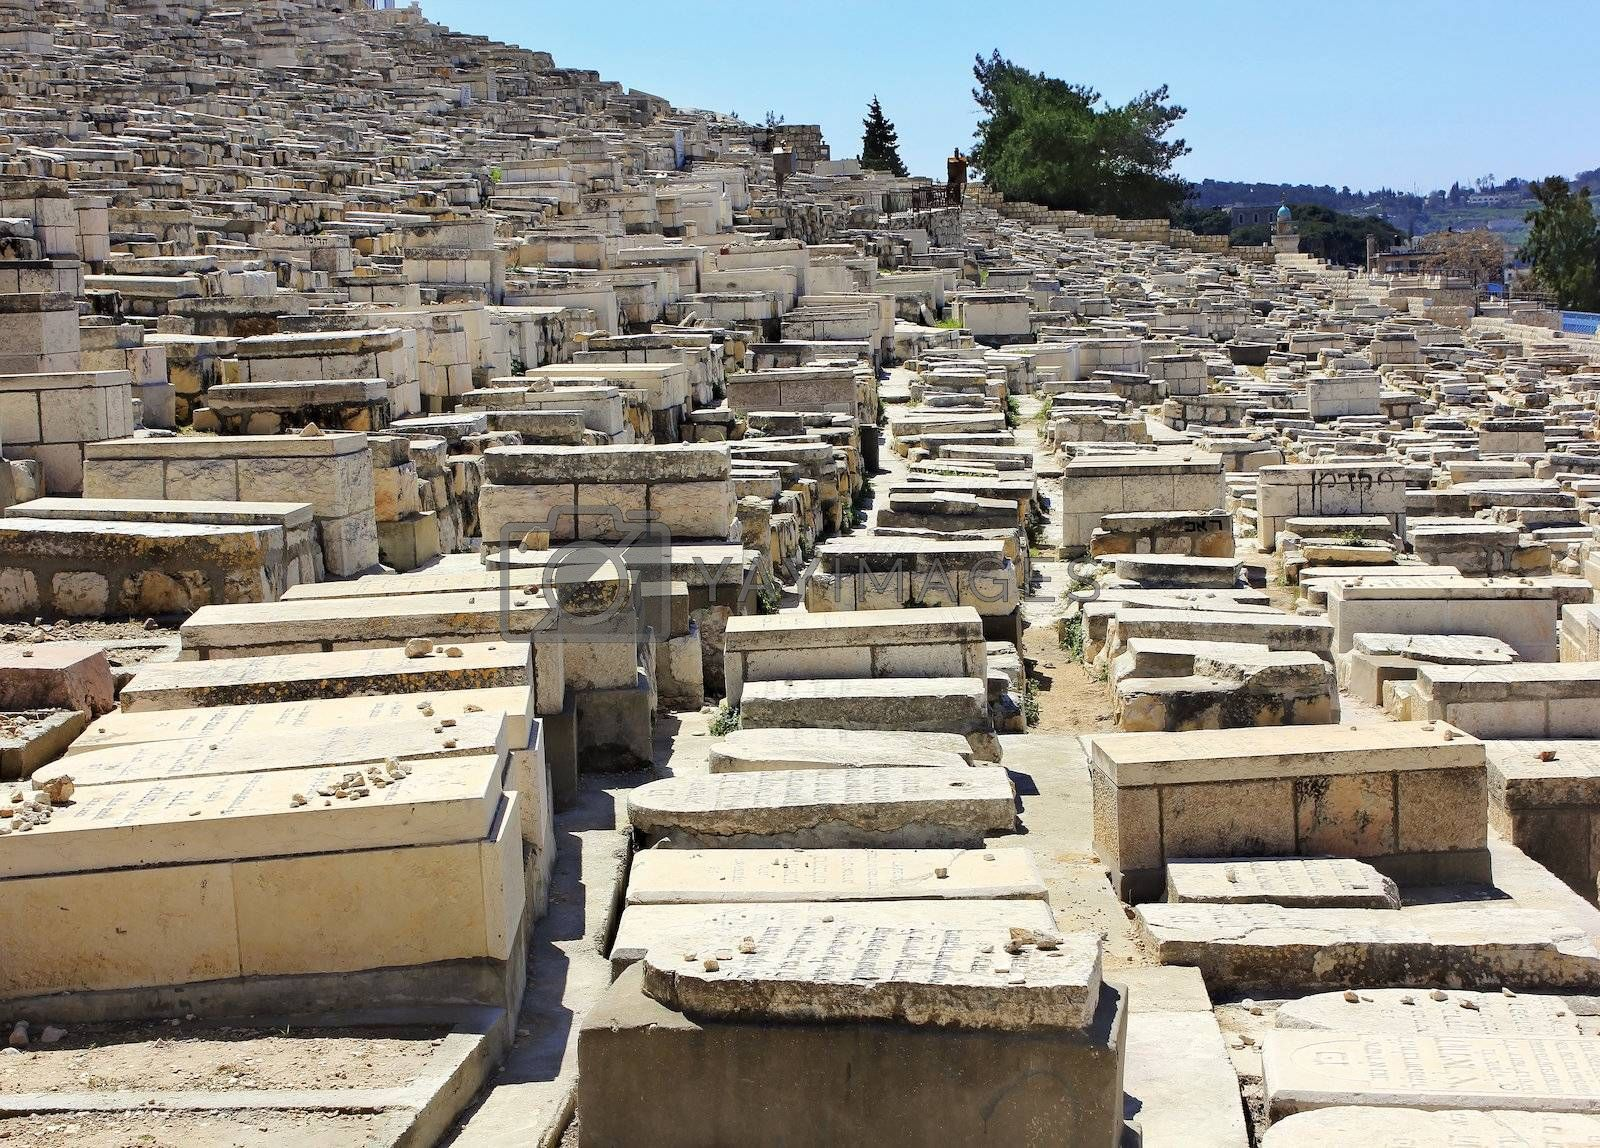 ancient Jewish cemetery on the Mount of Olives in Jerusalem, Israel